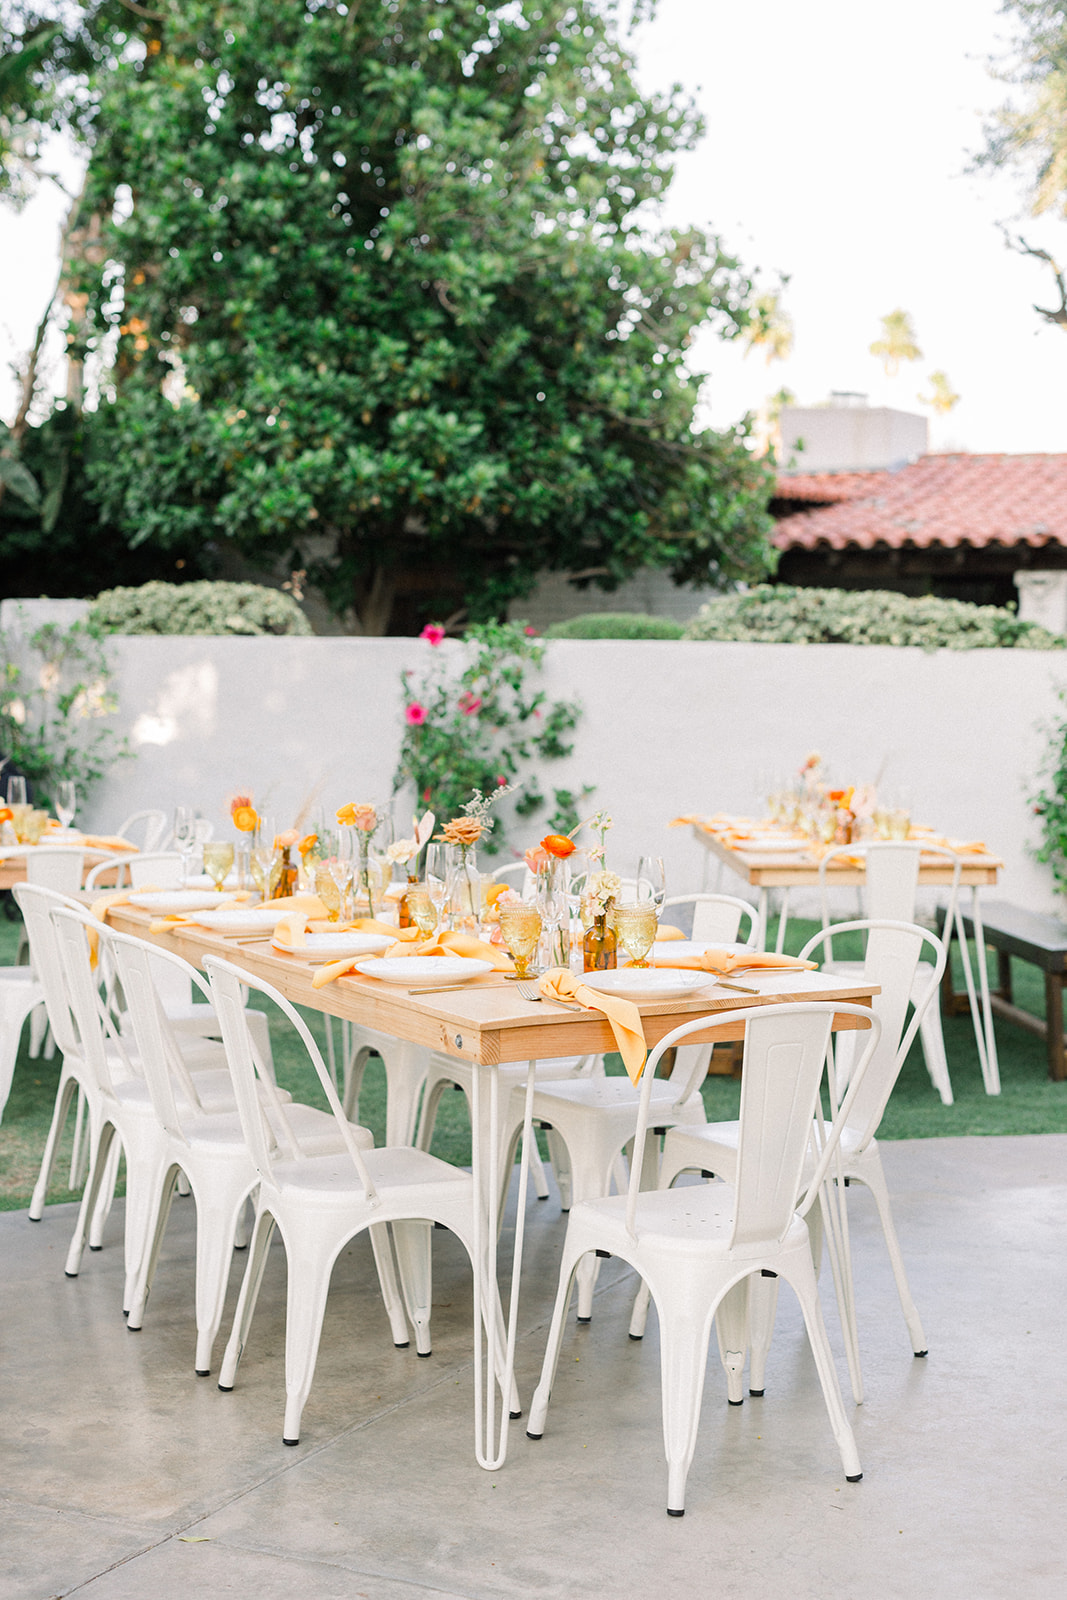 White bistro chairs for an outdoor Palm Springs Wedding